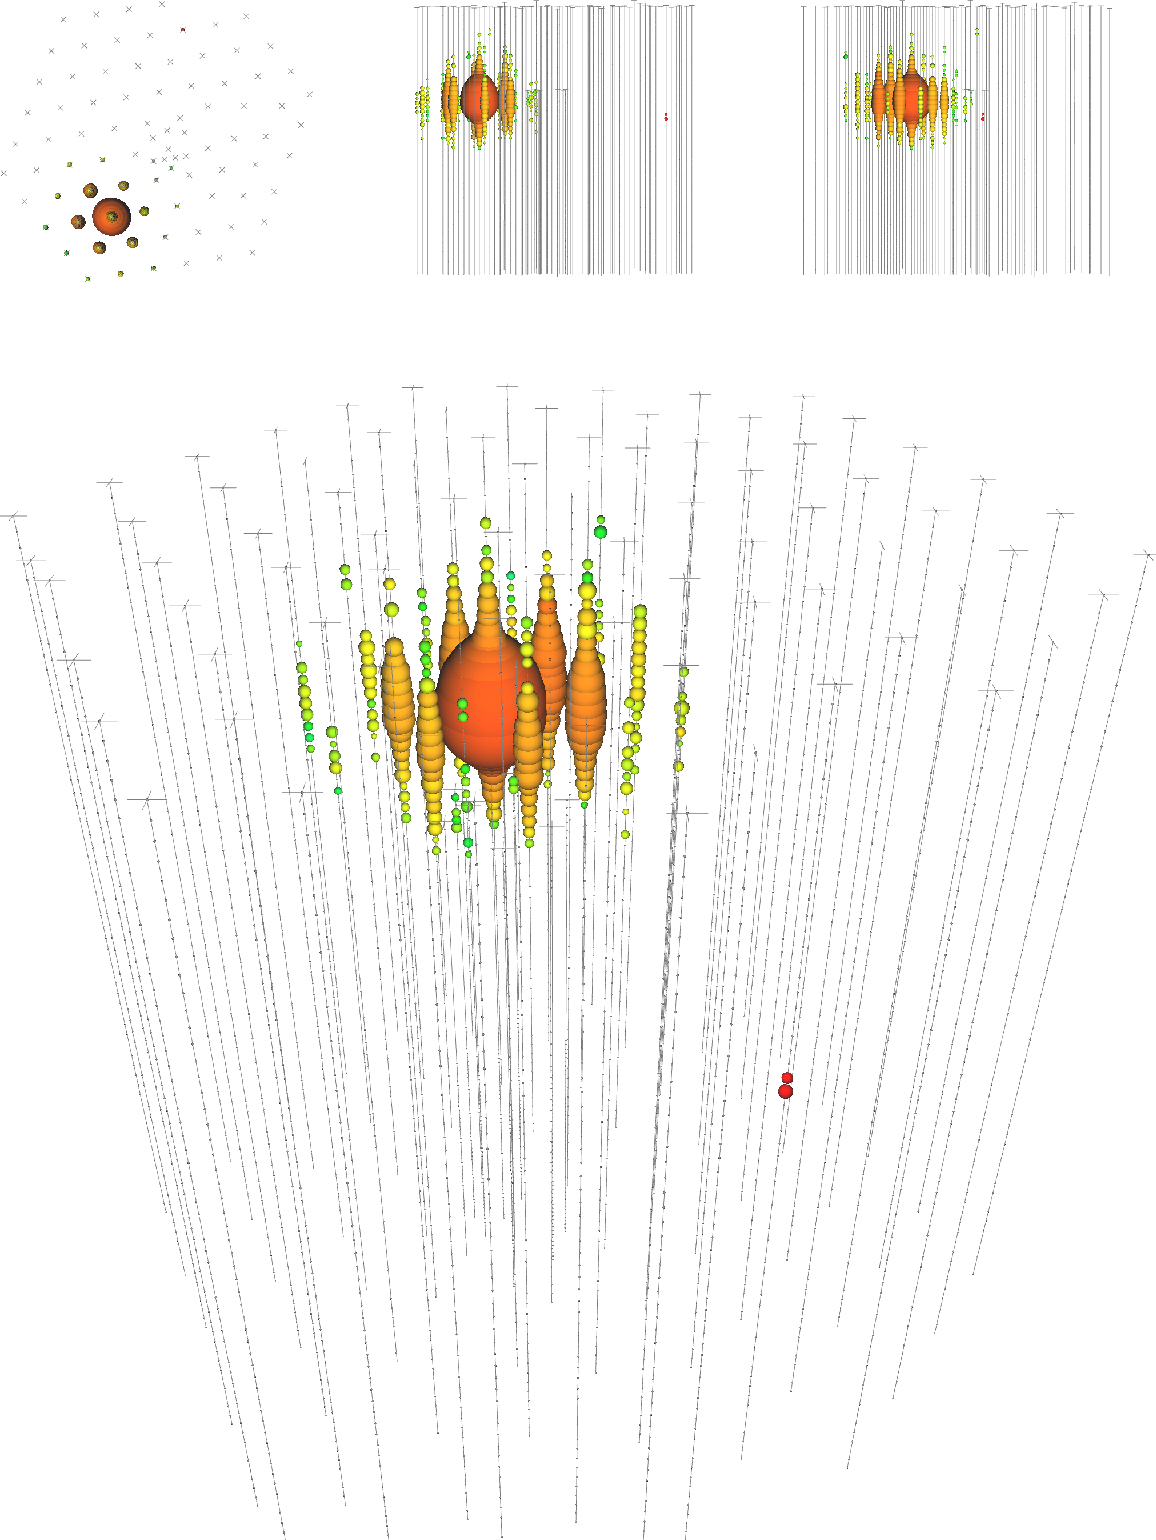 Figure 20: A high-energy cascade event in IceCube with deposited energy of 210±29.025.8 TeV [58]. The colored spheres represent DOMs that have registered light during the event. The size of the spheres are indicative of the total light received by the PMT on that DOM. The color denotes the timing of the hit with red corresponding to earlier times and blue corresponding to later times.